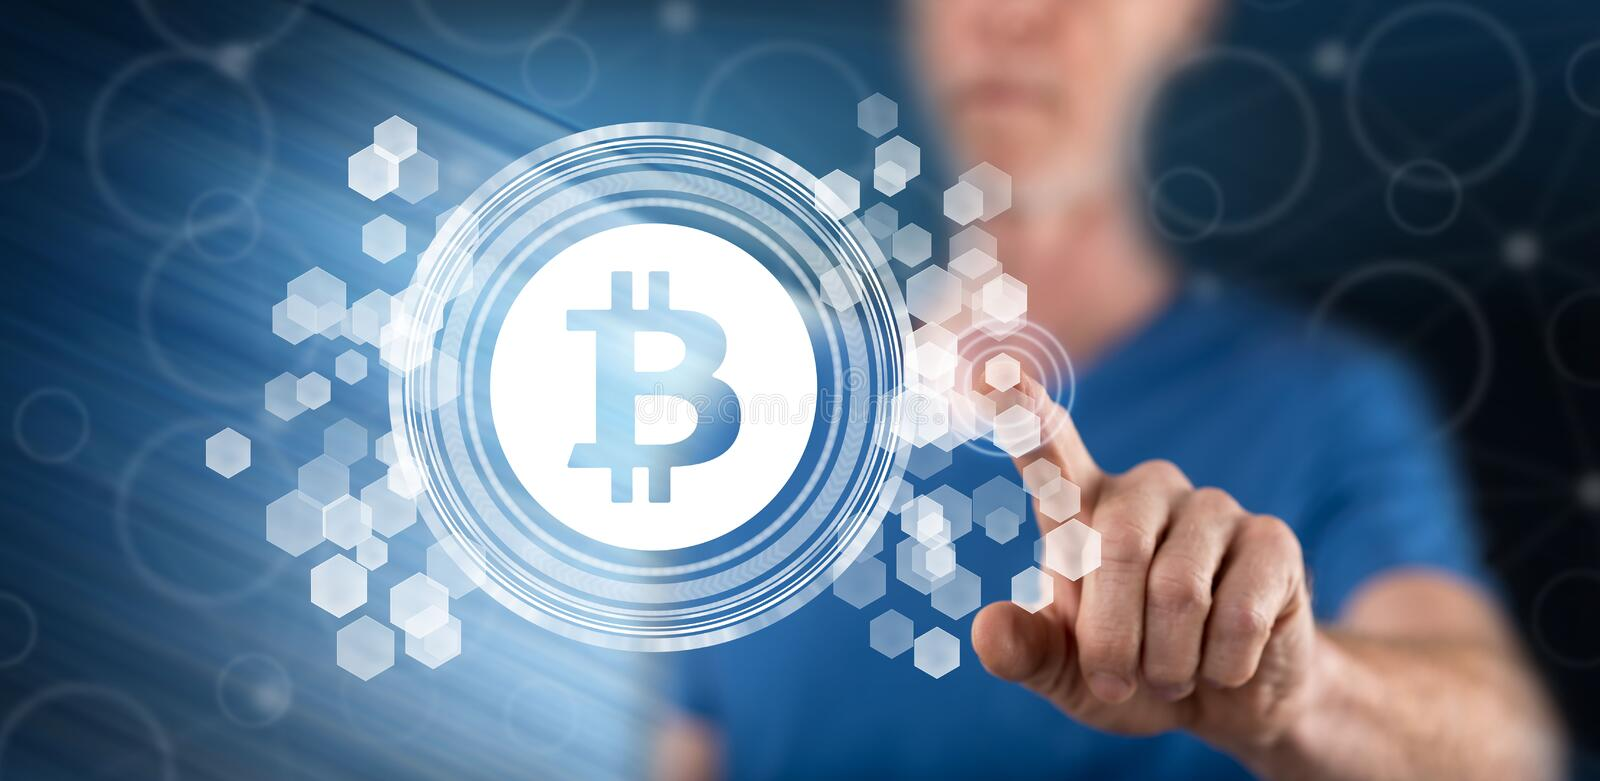 Man touching a bitcoin concept royalty free stock image